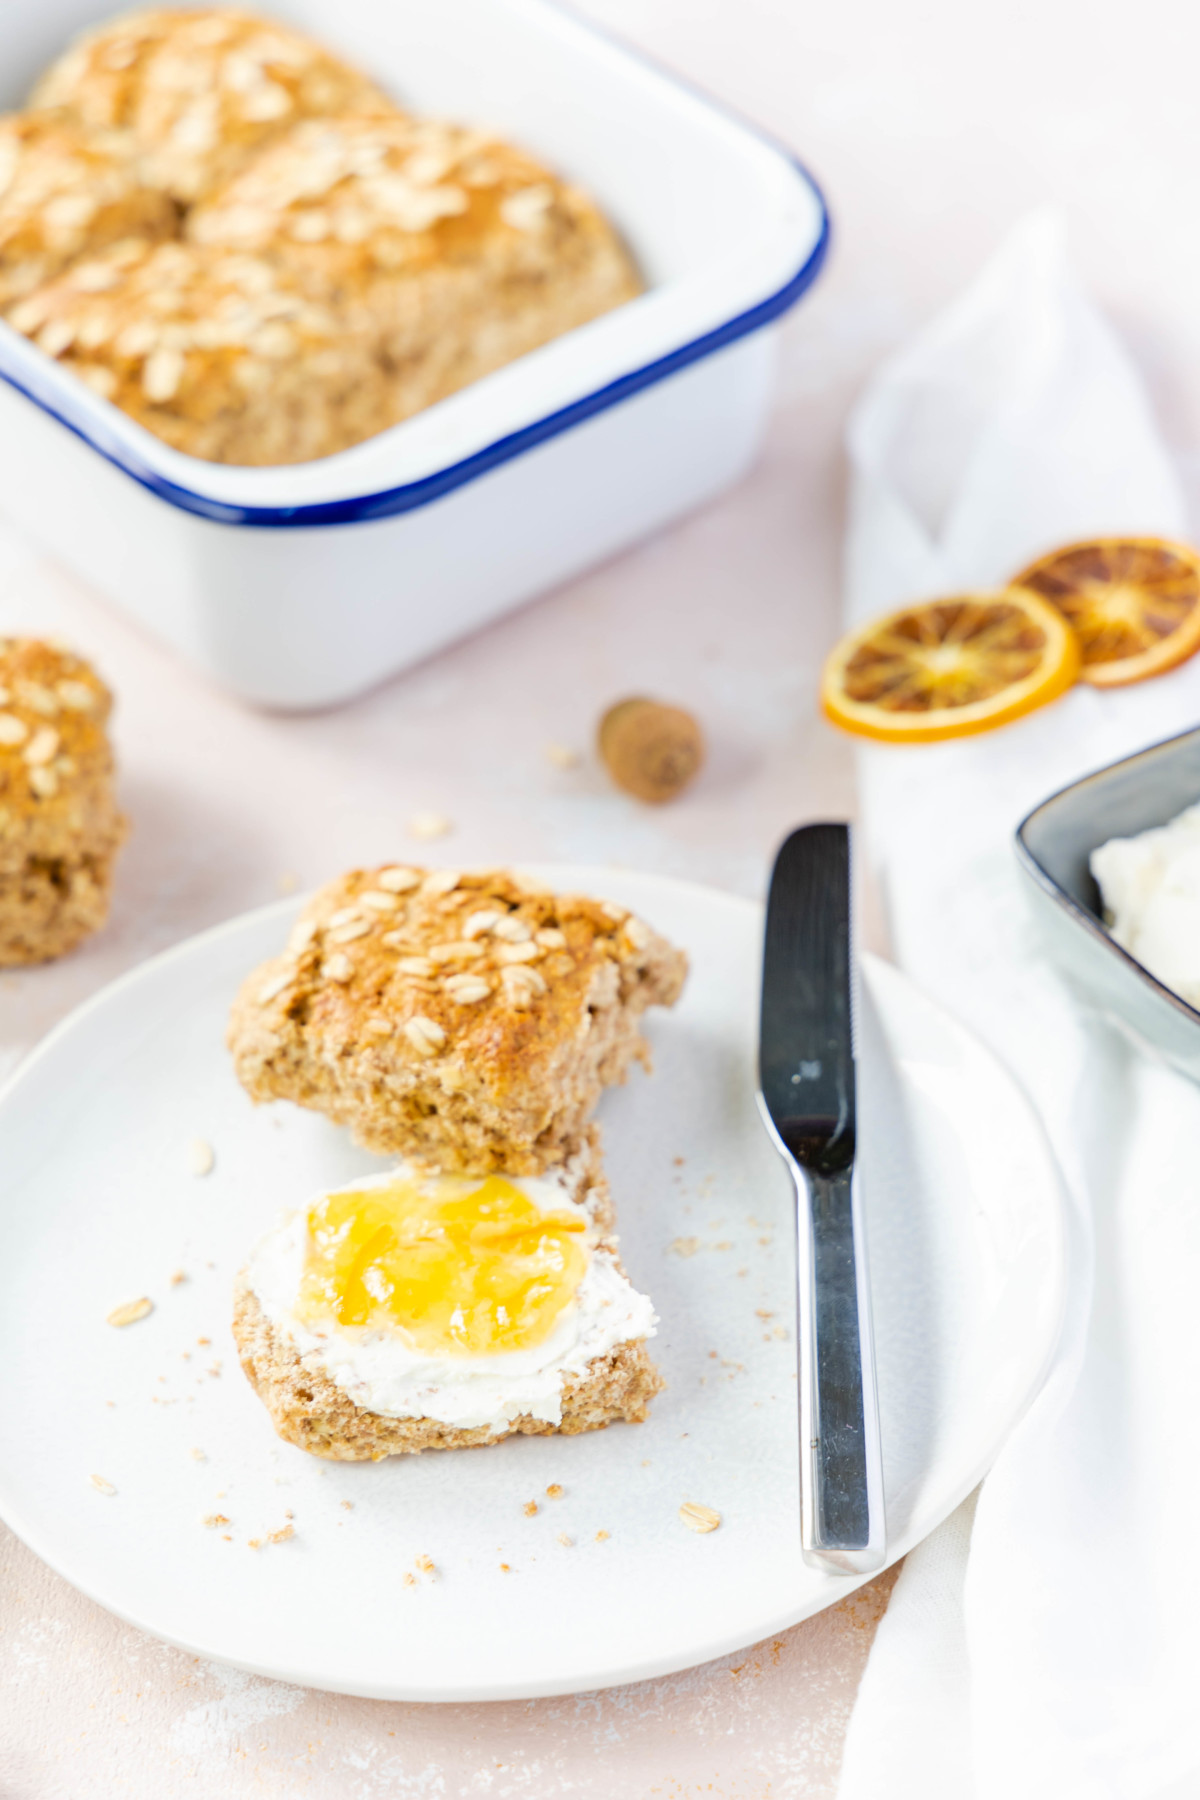 Vollkorn Scones mit Haferflocken und Ahornsirup // Whole Wheat Scones with oats and maple sirup by https://babyrockmyday.com/vollkorn-scones